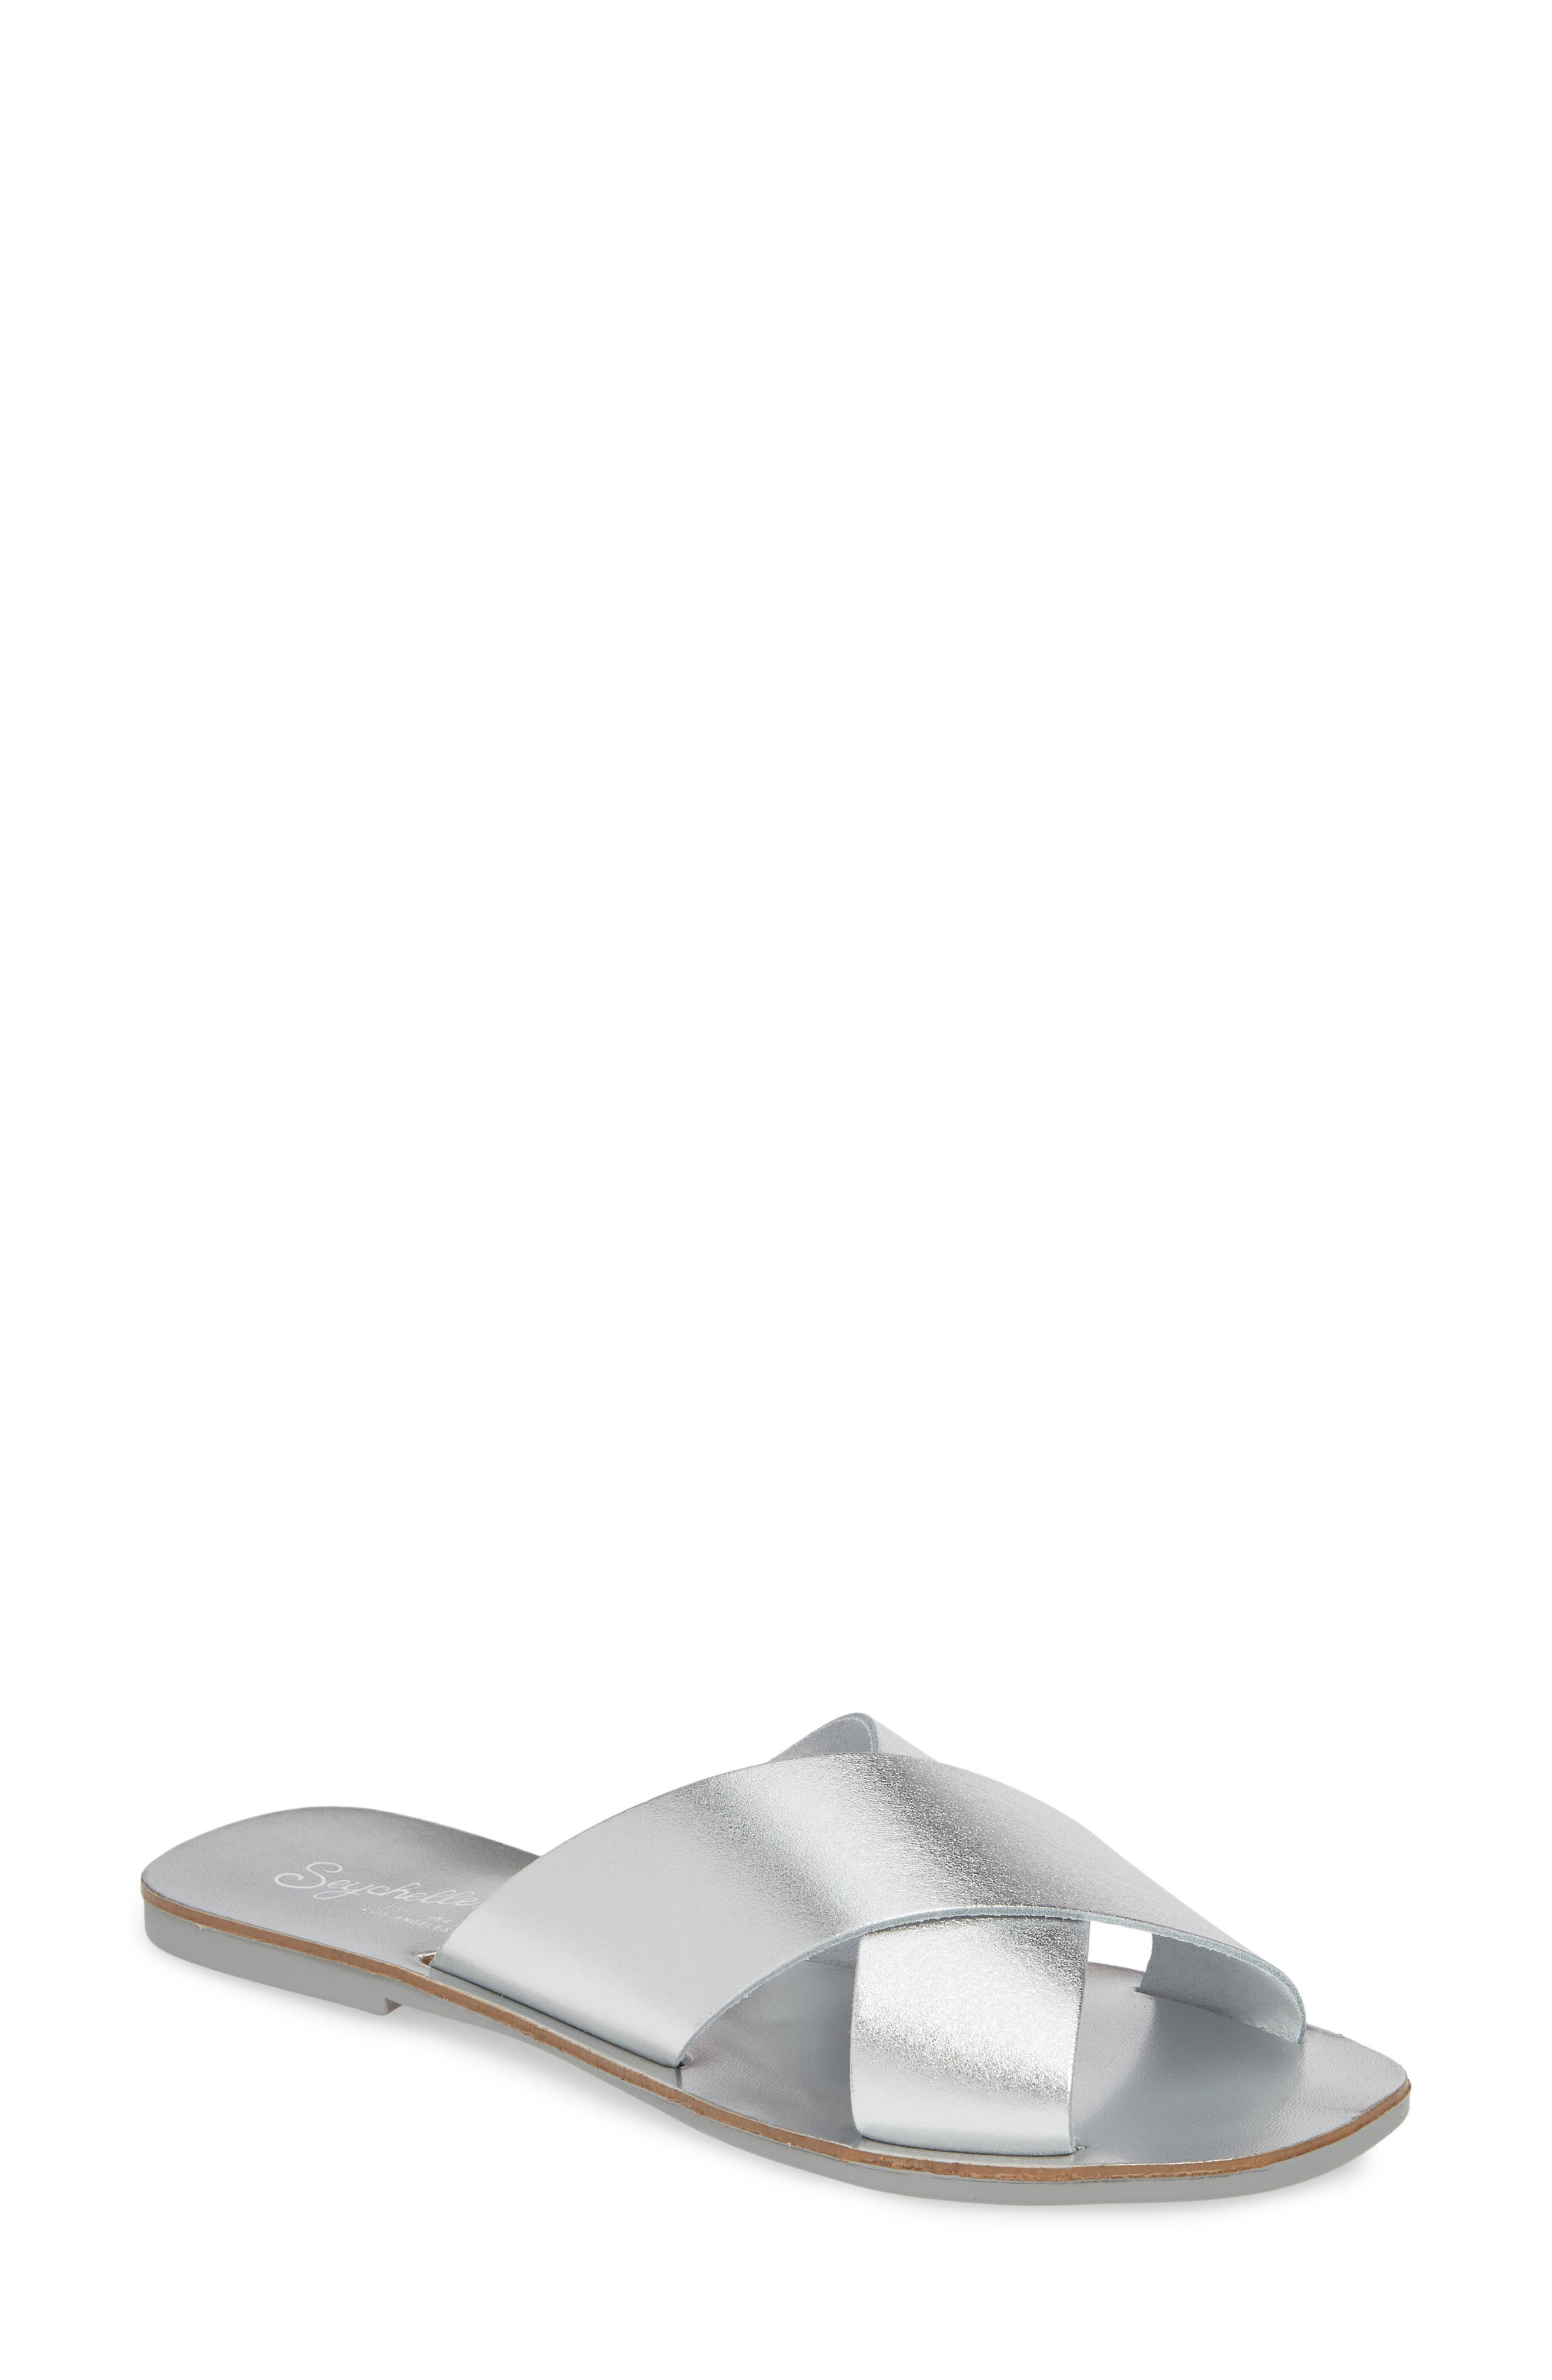 Total Relaxation Slide Sandal, Main, color, SILVER LEATHER